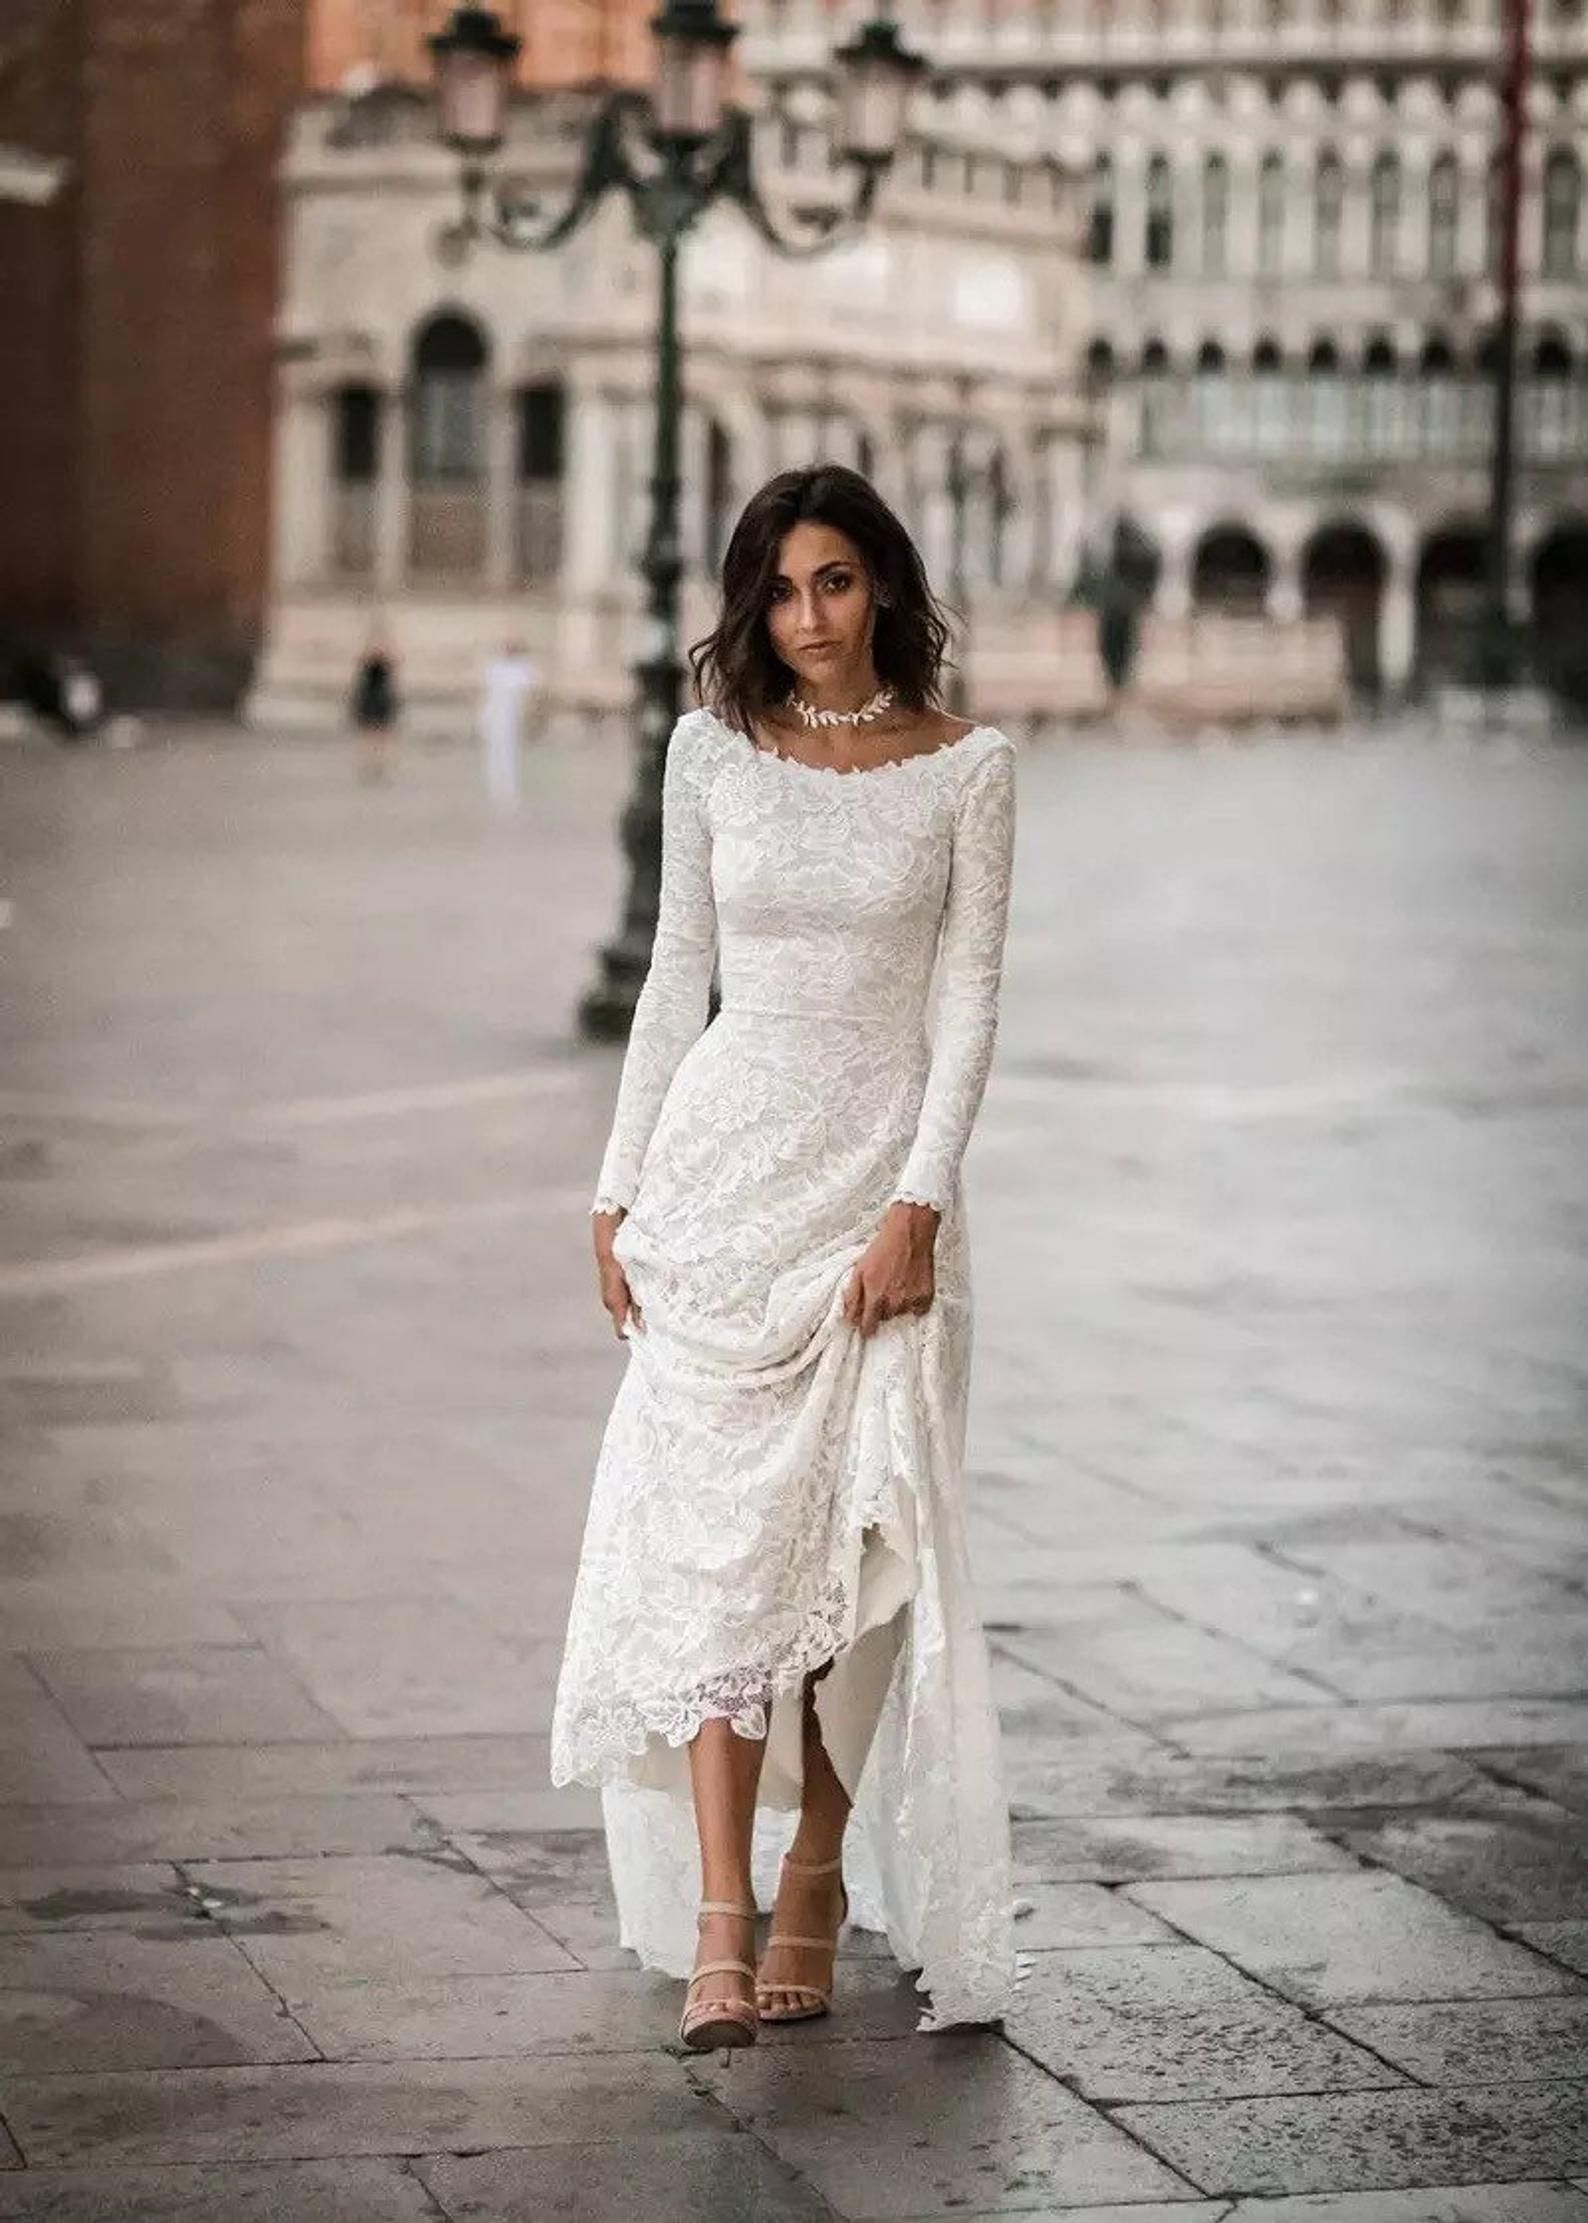 These Victoria Soprano Wedding Dresses Will Make You Swoon 2019 Love In Paris Bridal Collection Wedding Inspirasi Aline Wedding Dress Best Wedding Dresses Wedding Dresses Lace [ 1485 x 900 Pixel ]